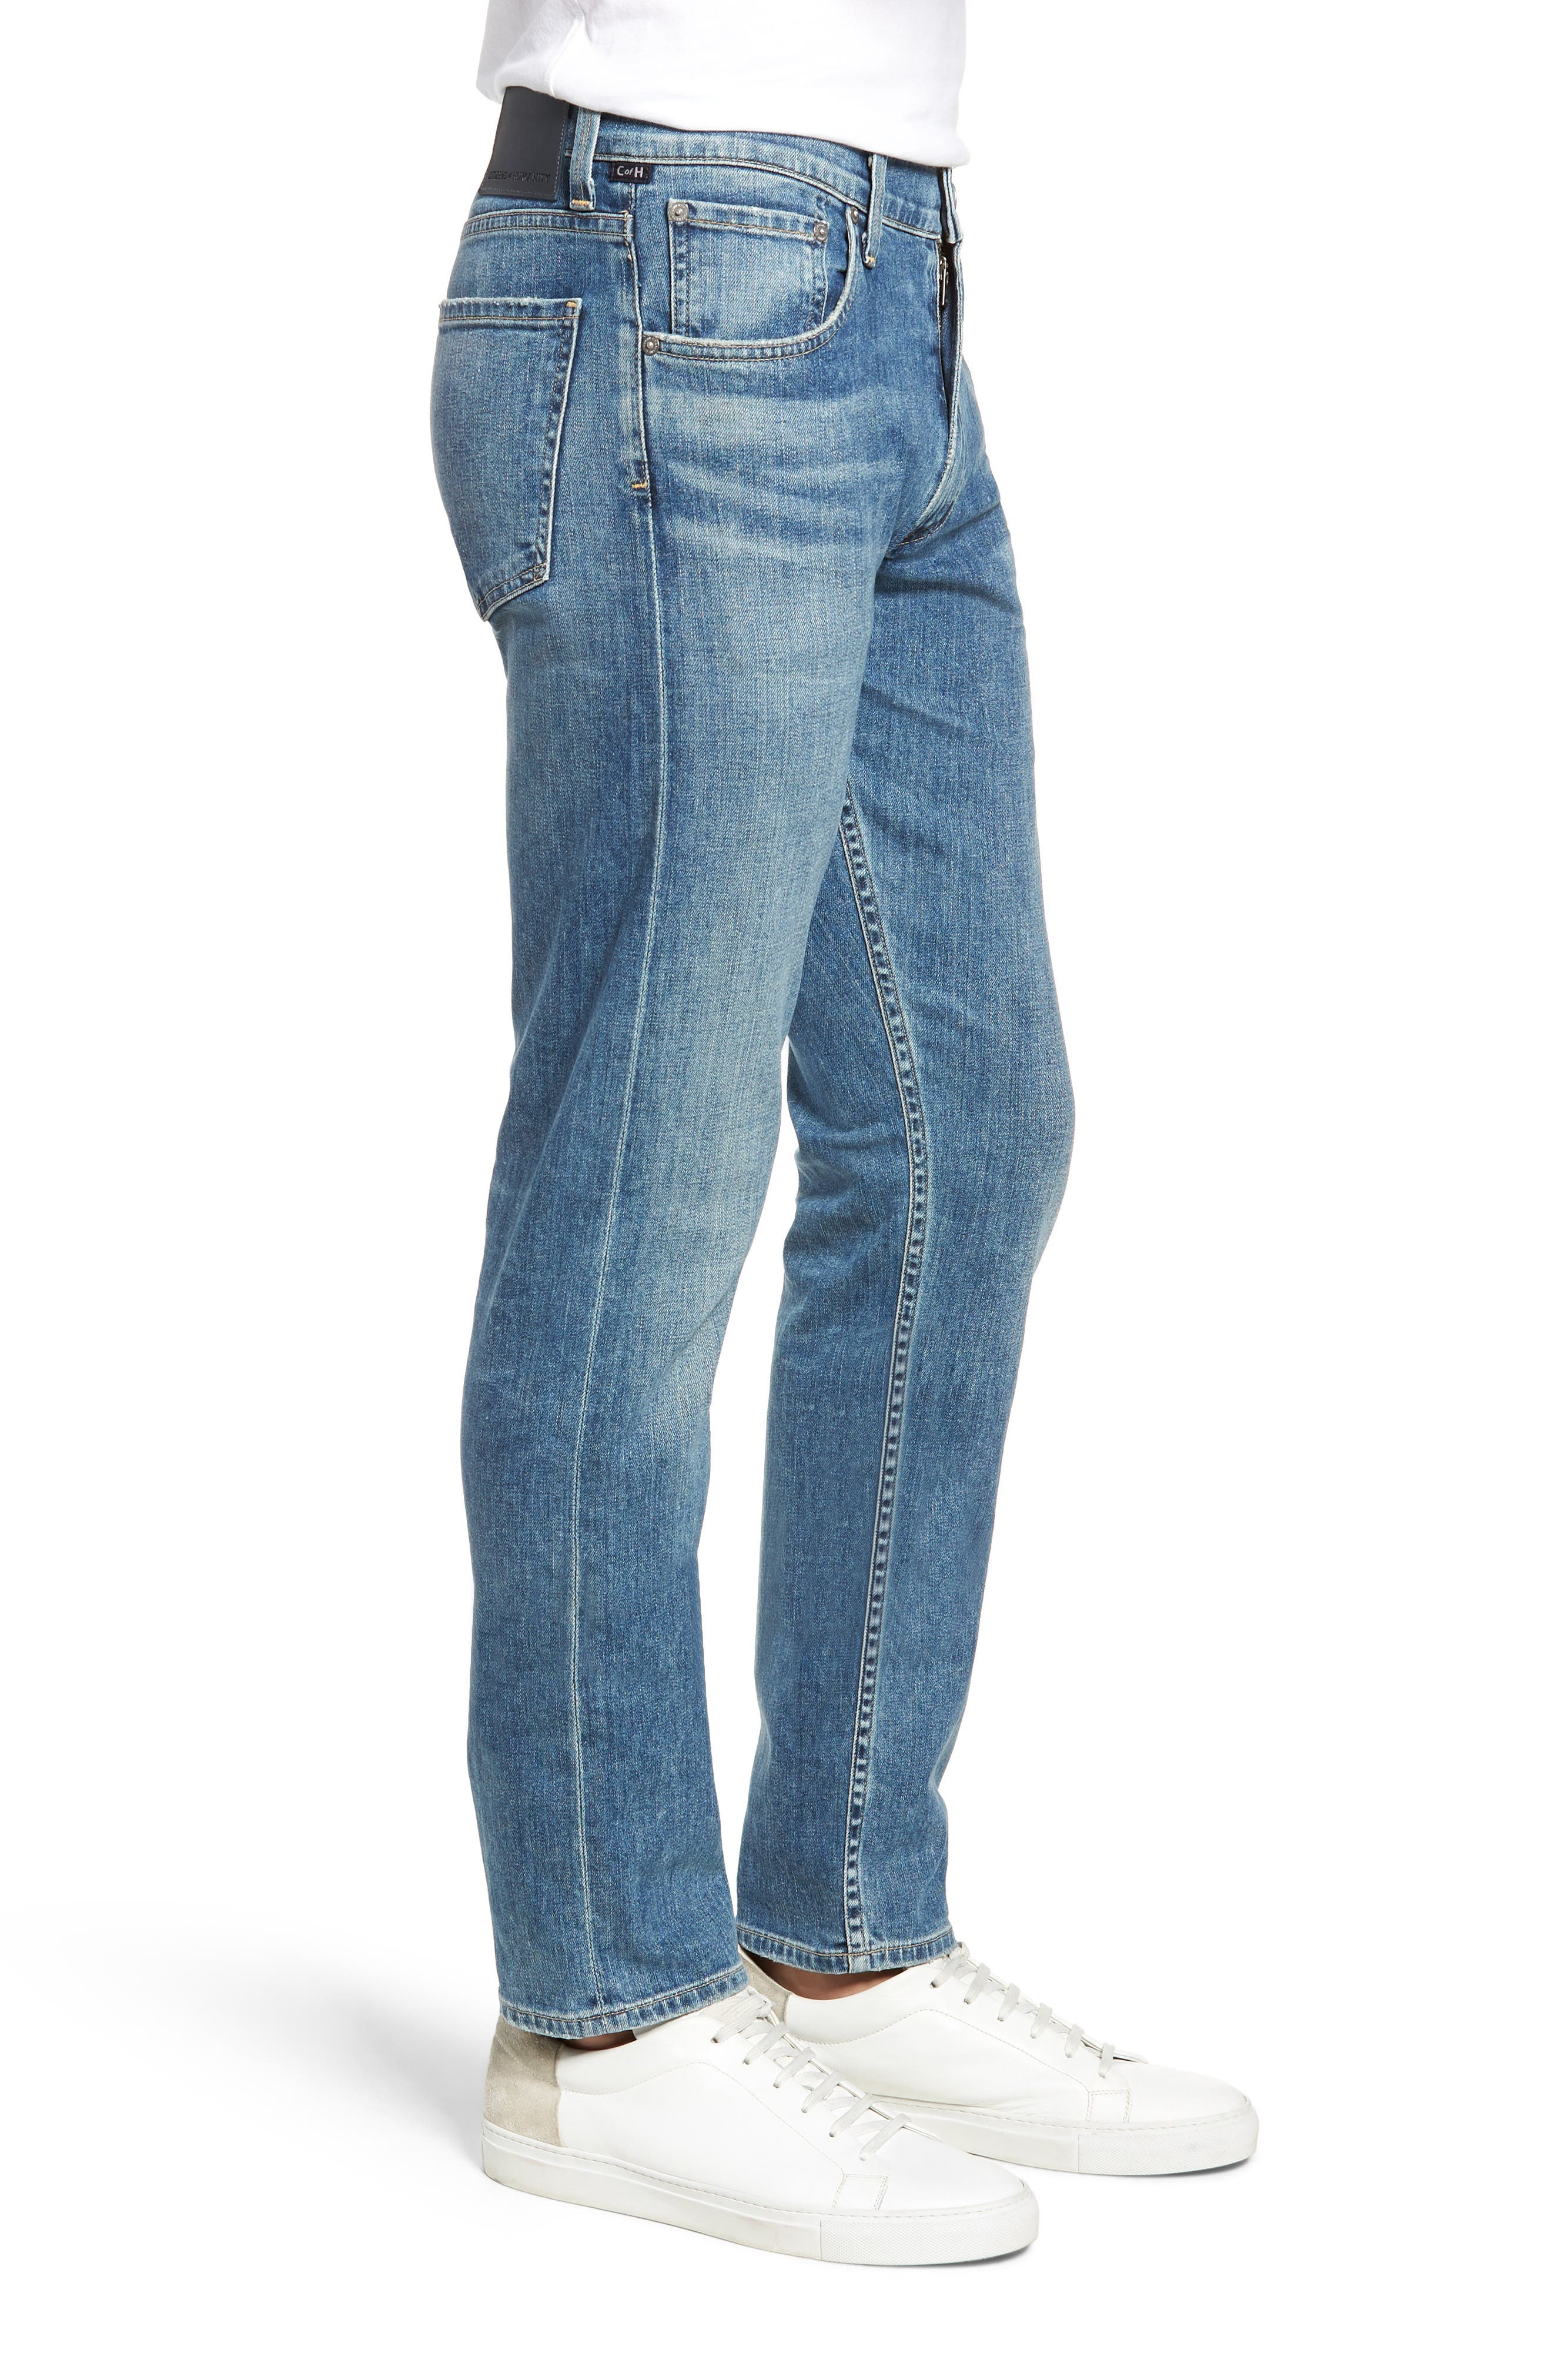 Bowery Slim Fit Jeans,                             Alternate thumbnail 3, color,                             ALAND